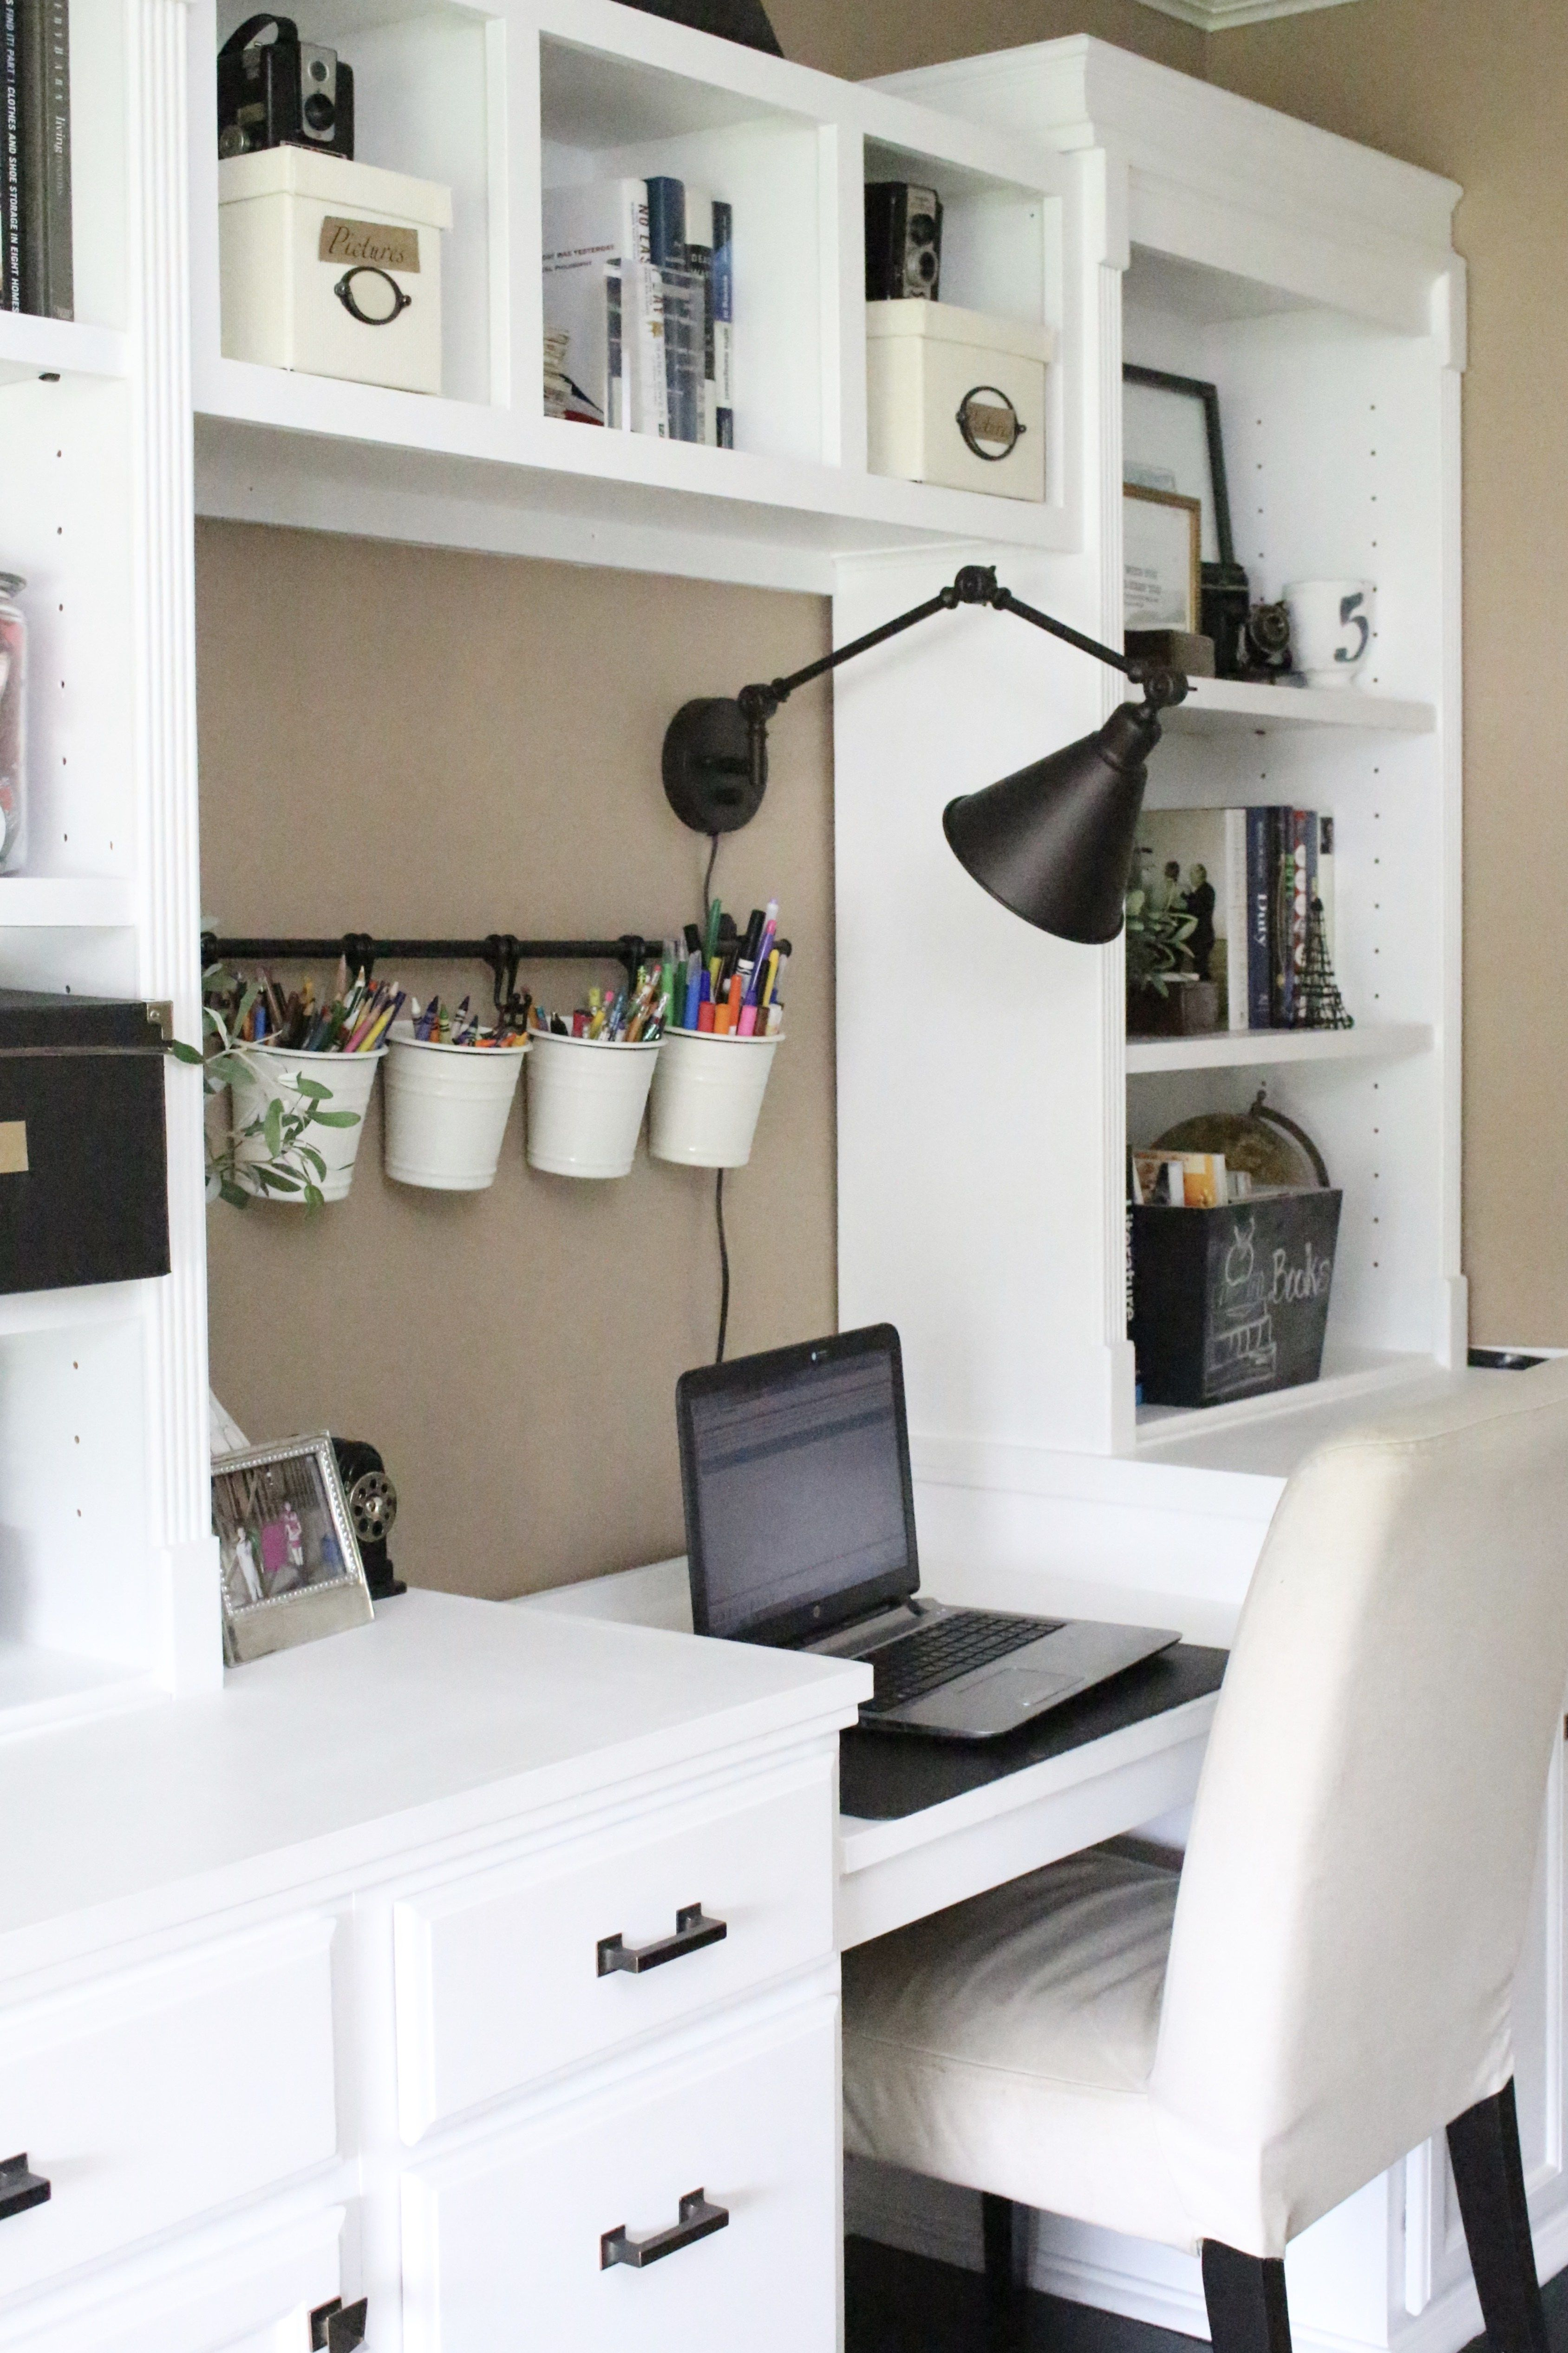 One Room Challenge Orc Week 6 Reveal Of A Functional Stylish Home Office Ideas White Cottage Home Living Home Office Storage Home Office Decor Home Office Furniture